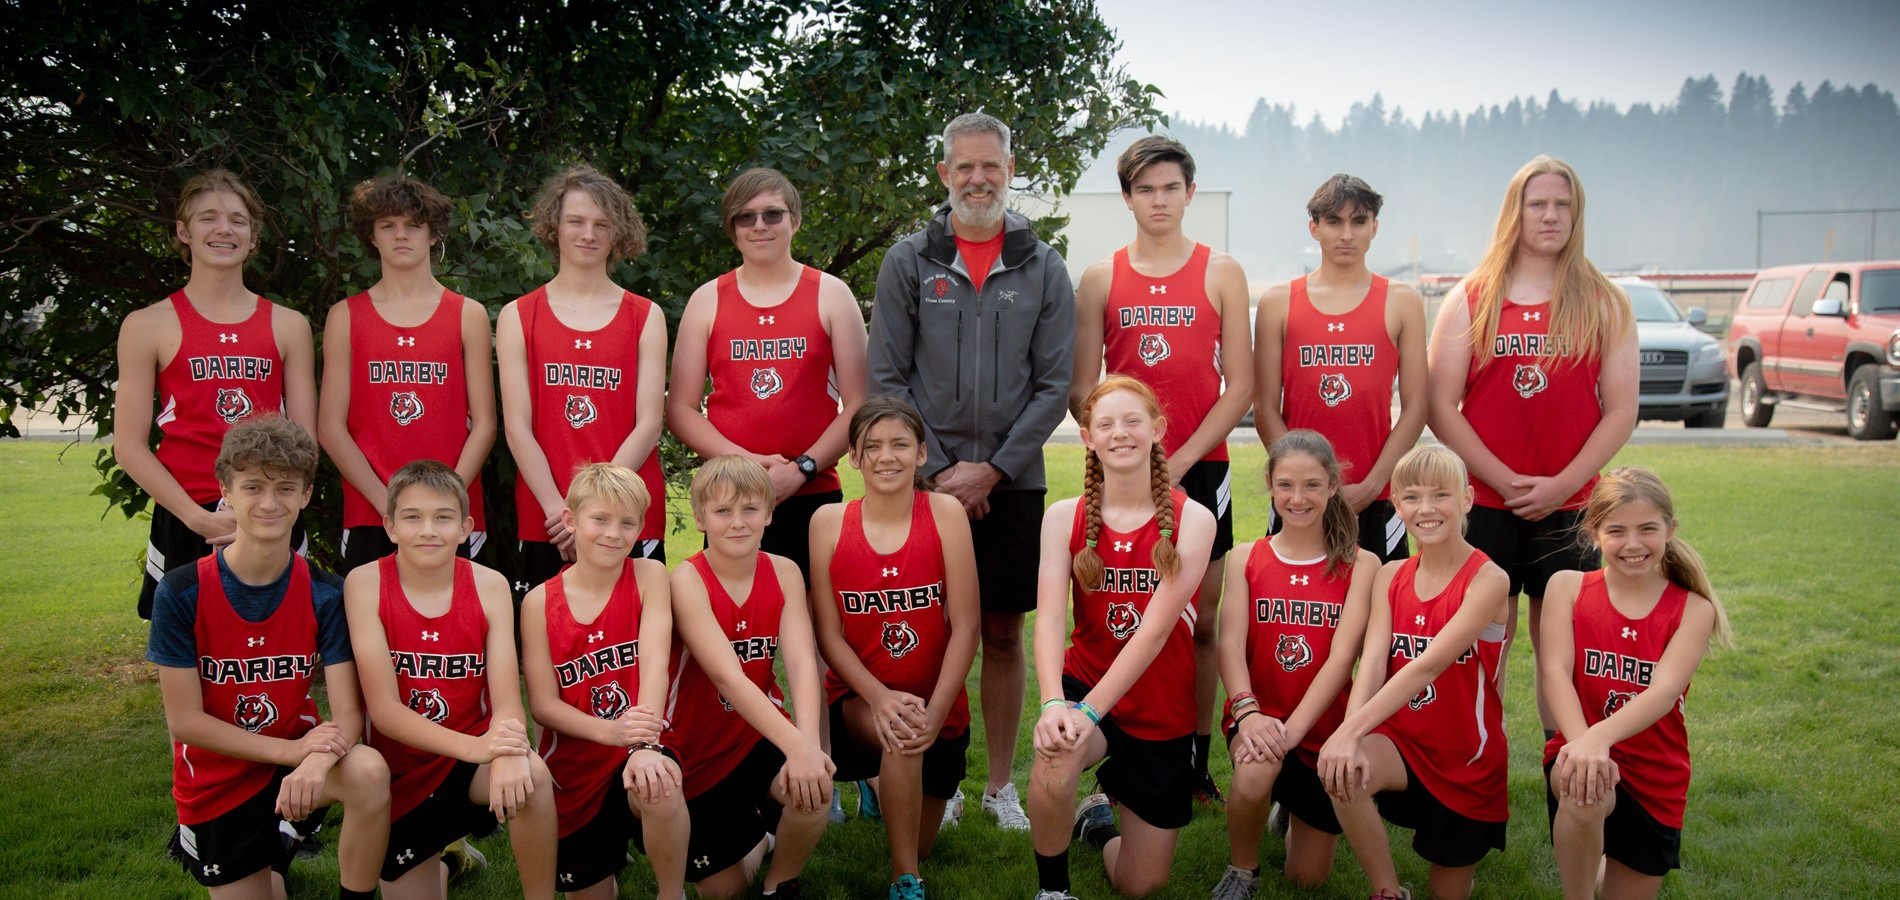 Darby Schools Cross Country Team 2020-2021